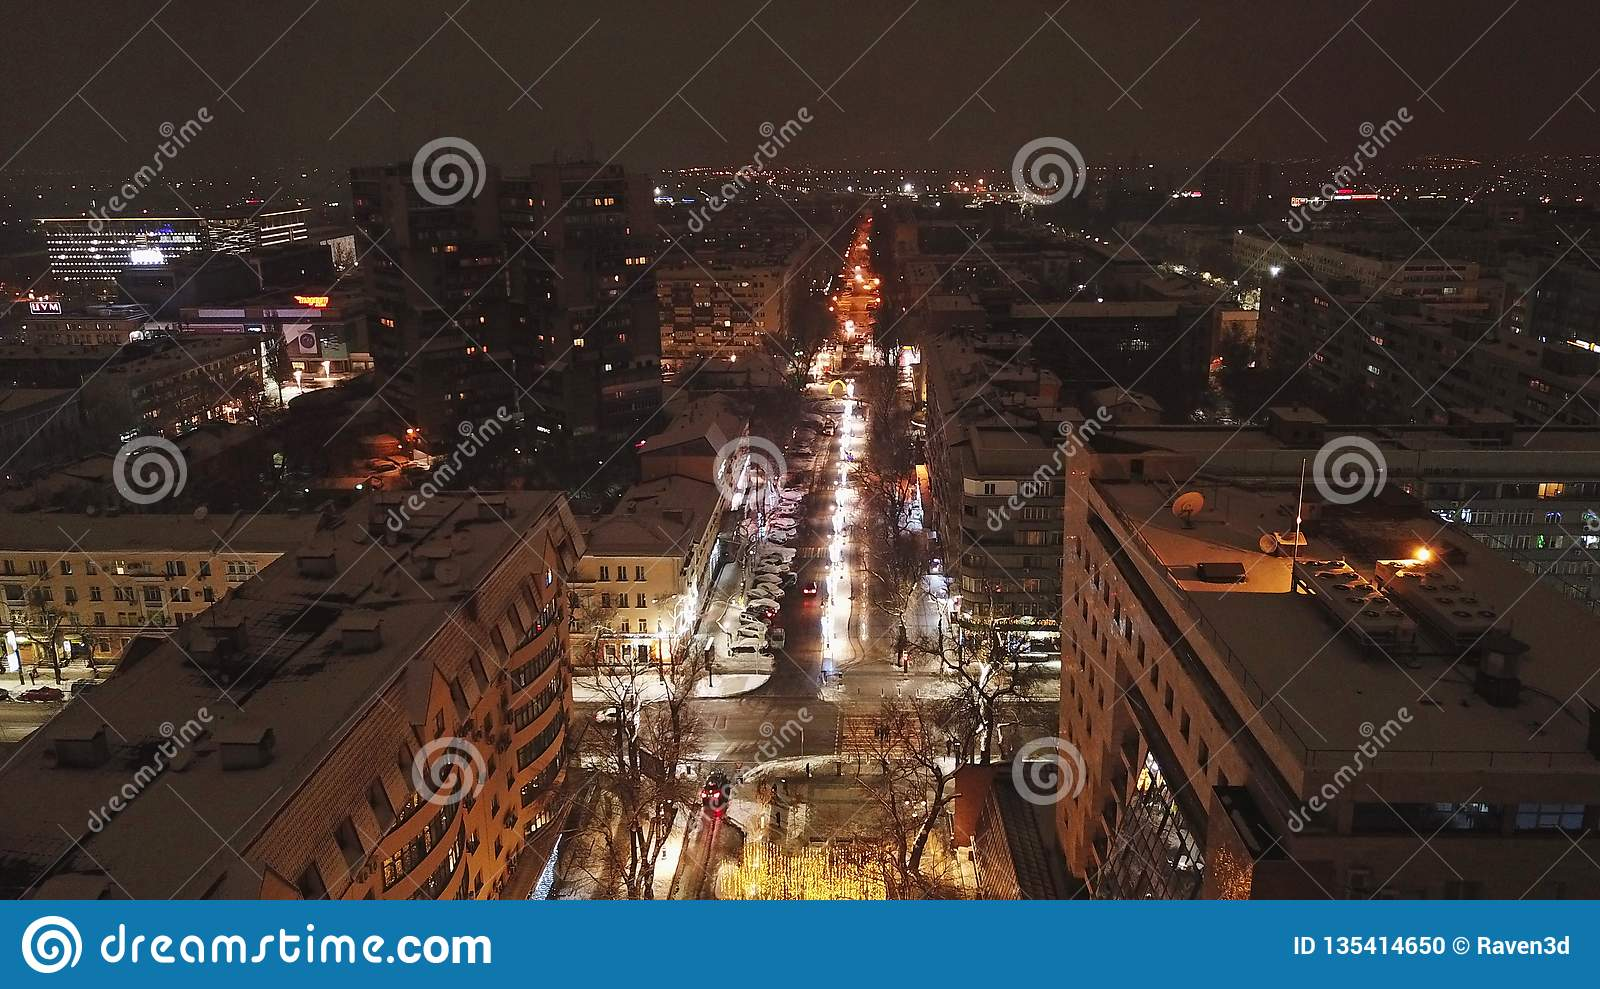 Night City Shooting With The Drone Of The Air Bright Streets Lights Roads Stock Photo Image Of Kazakhstan Covered 135414650